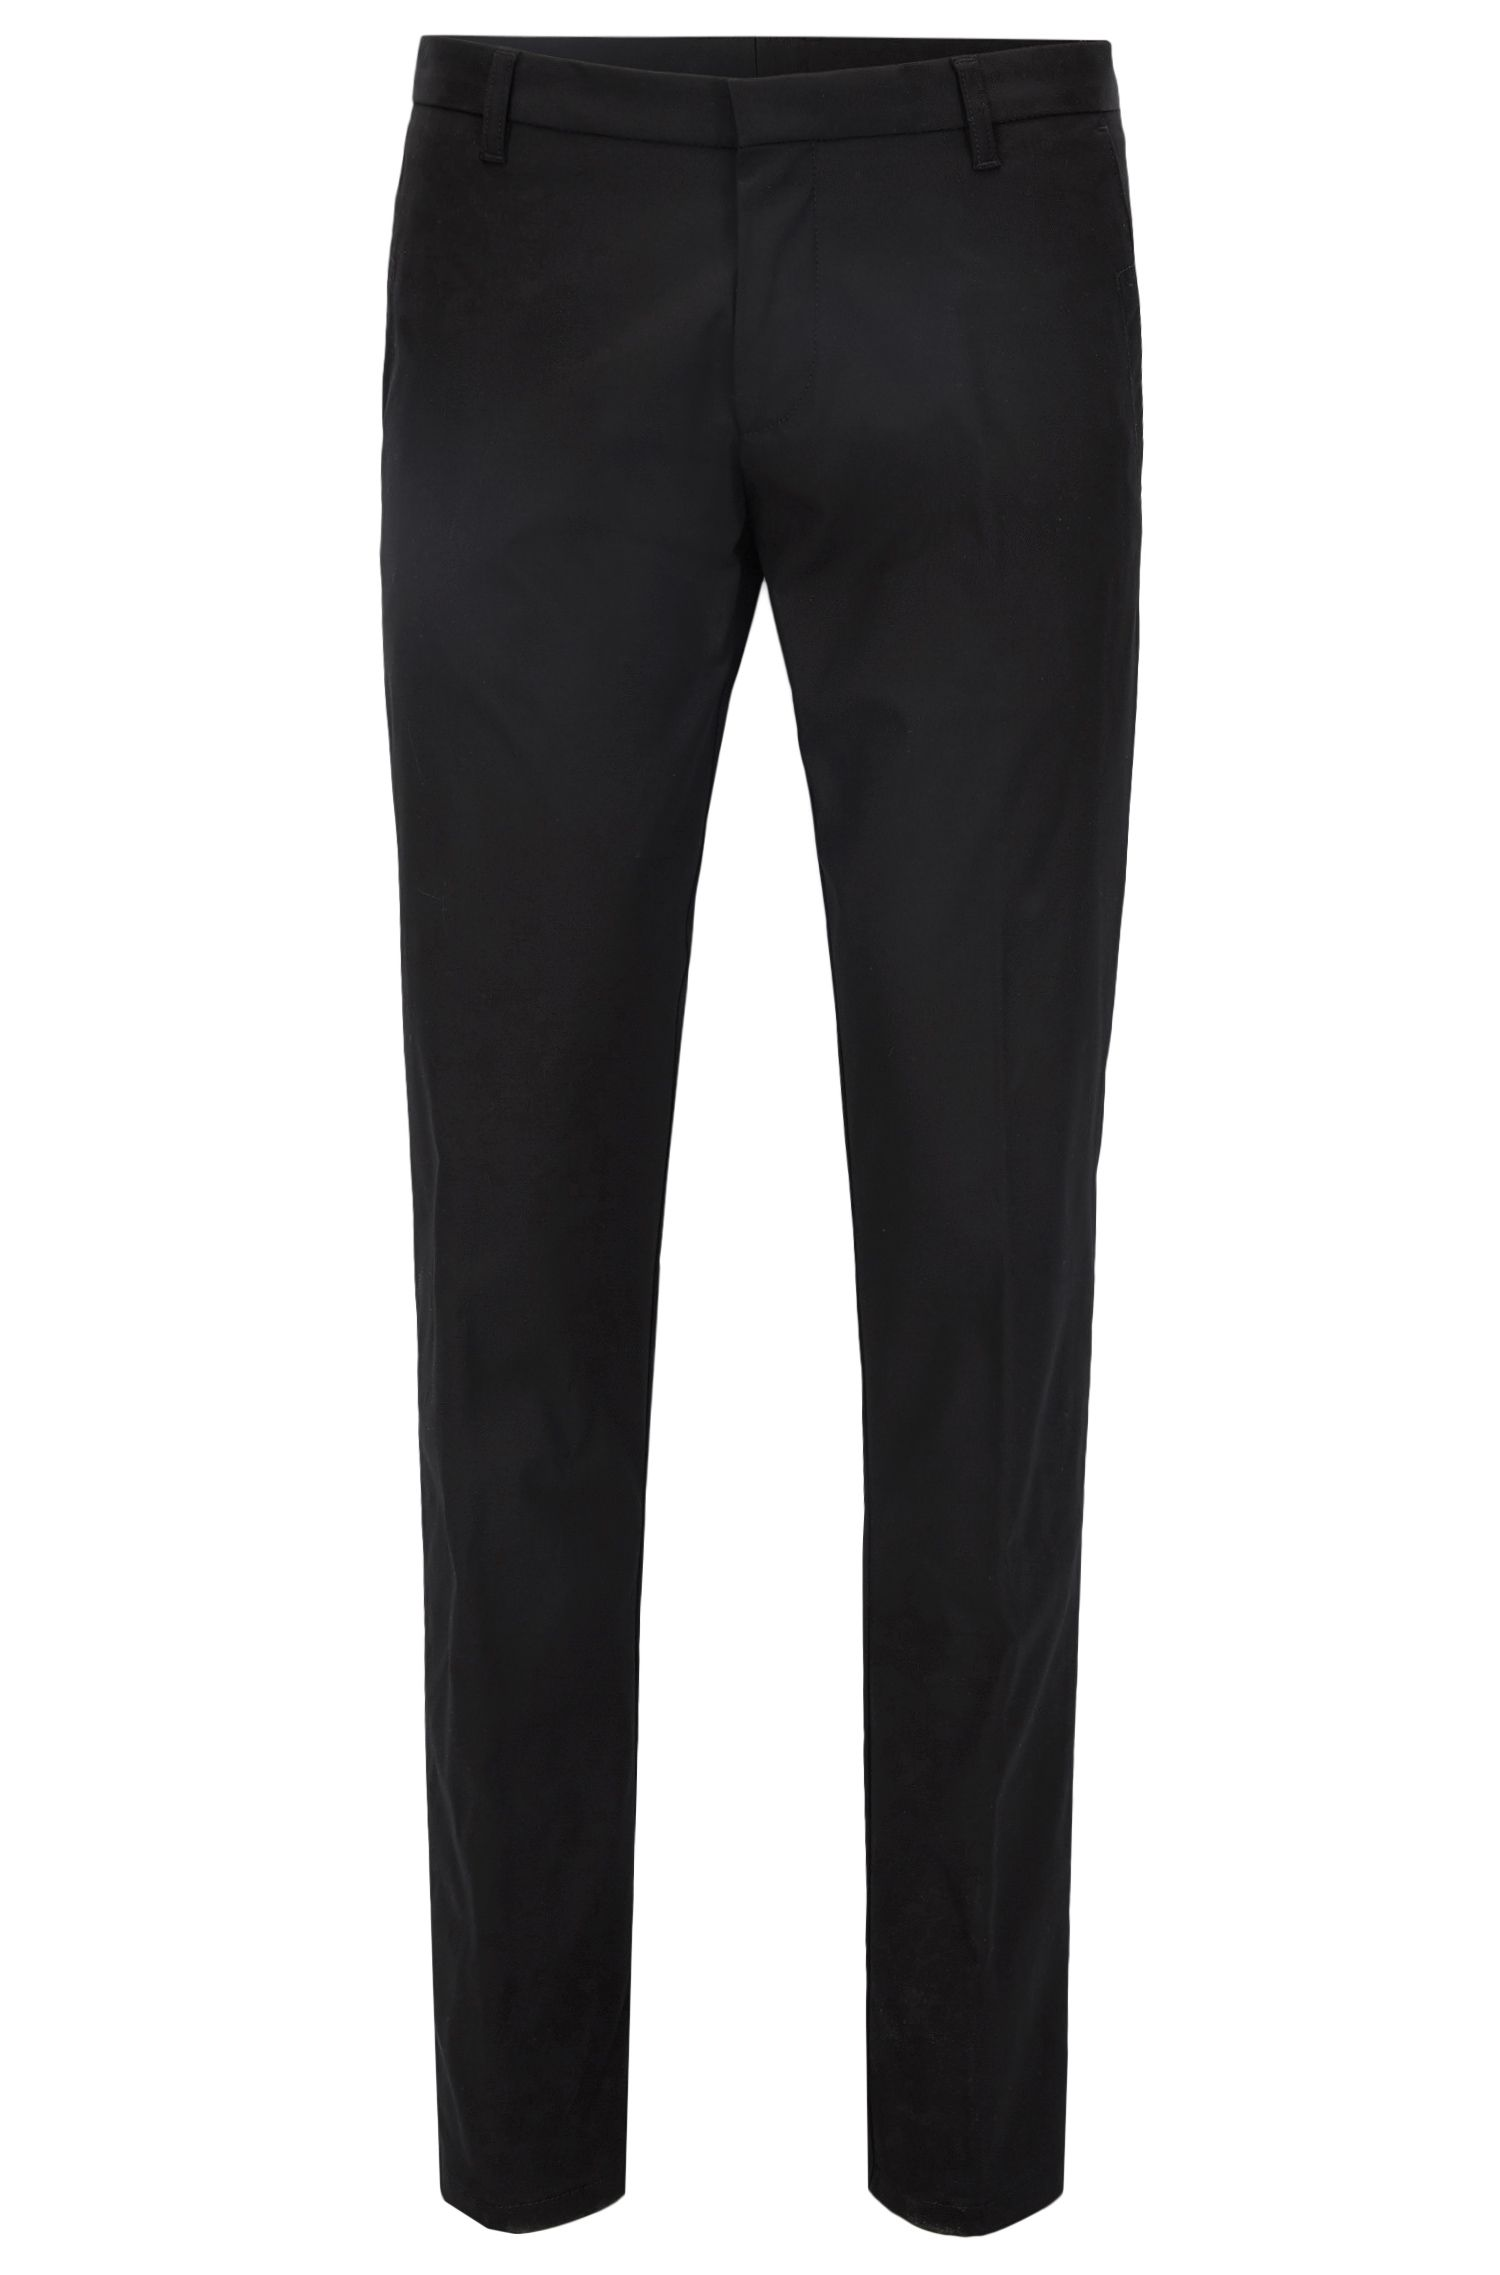 Pantaloni extra slim fit in cotone Pima